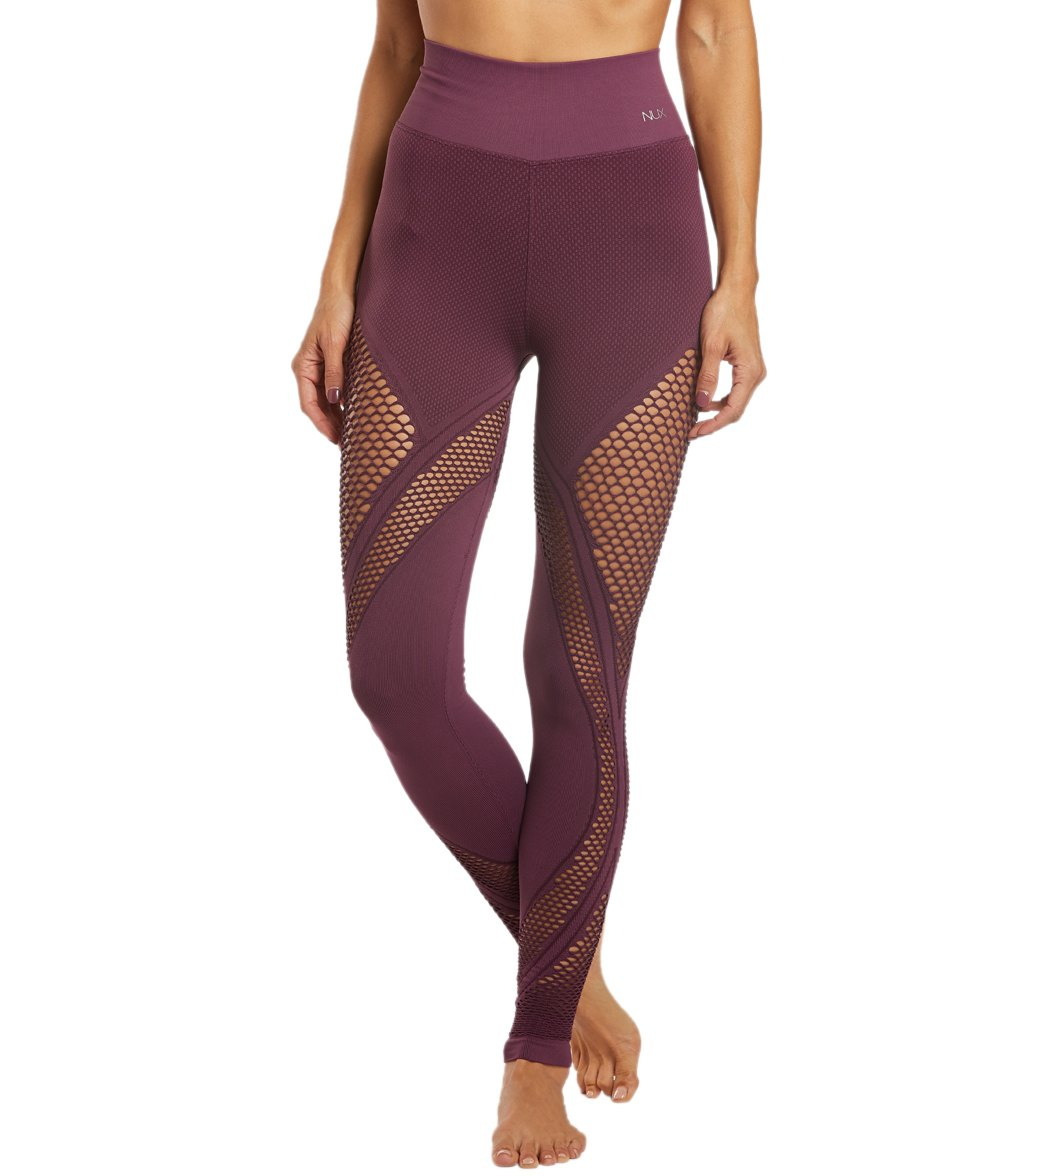 NUX All Net Seamless Yoga Leggings - Purple Nights Spandex